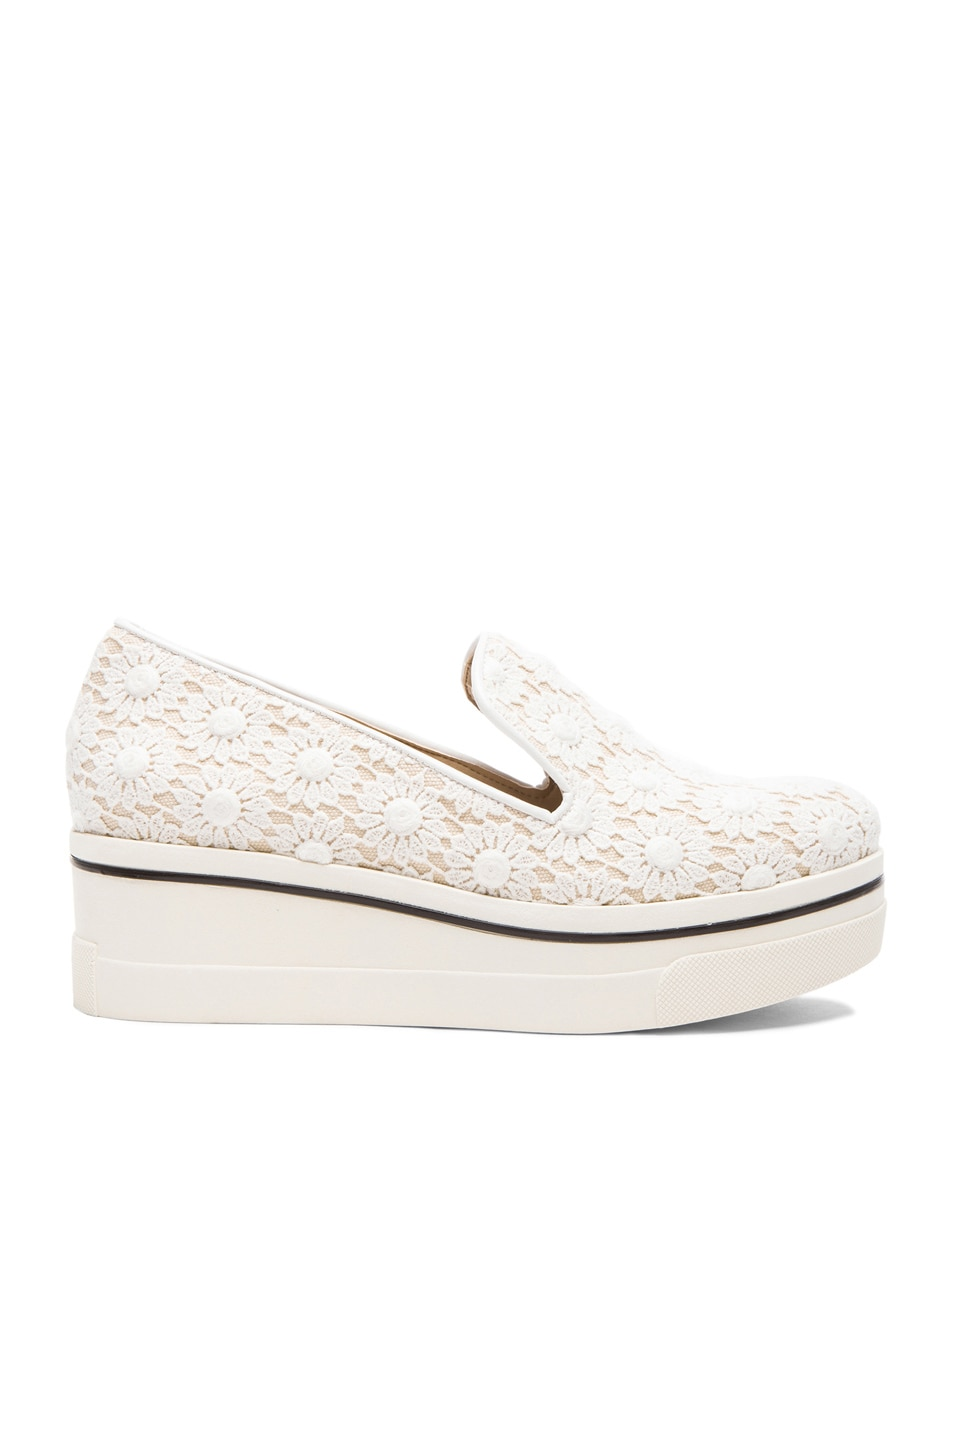 Image 1 of Stella McCartney Lace Loafer Wedges in White